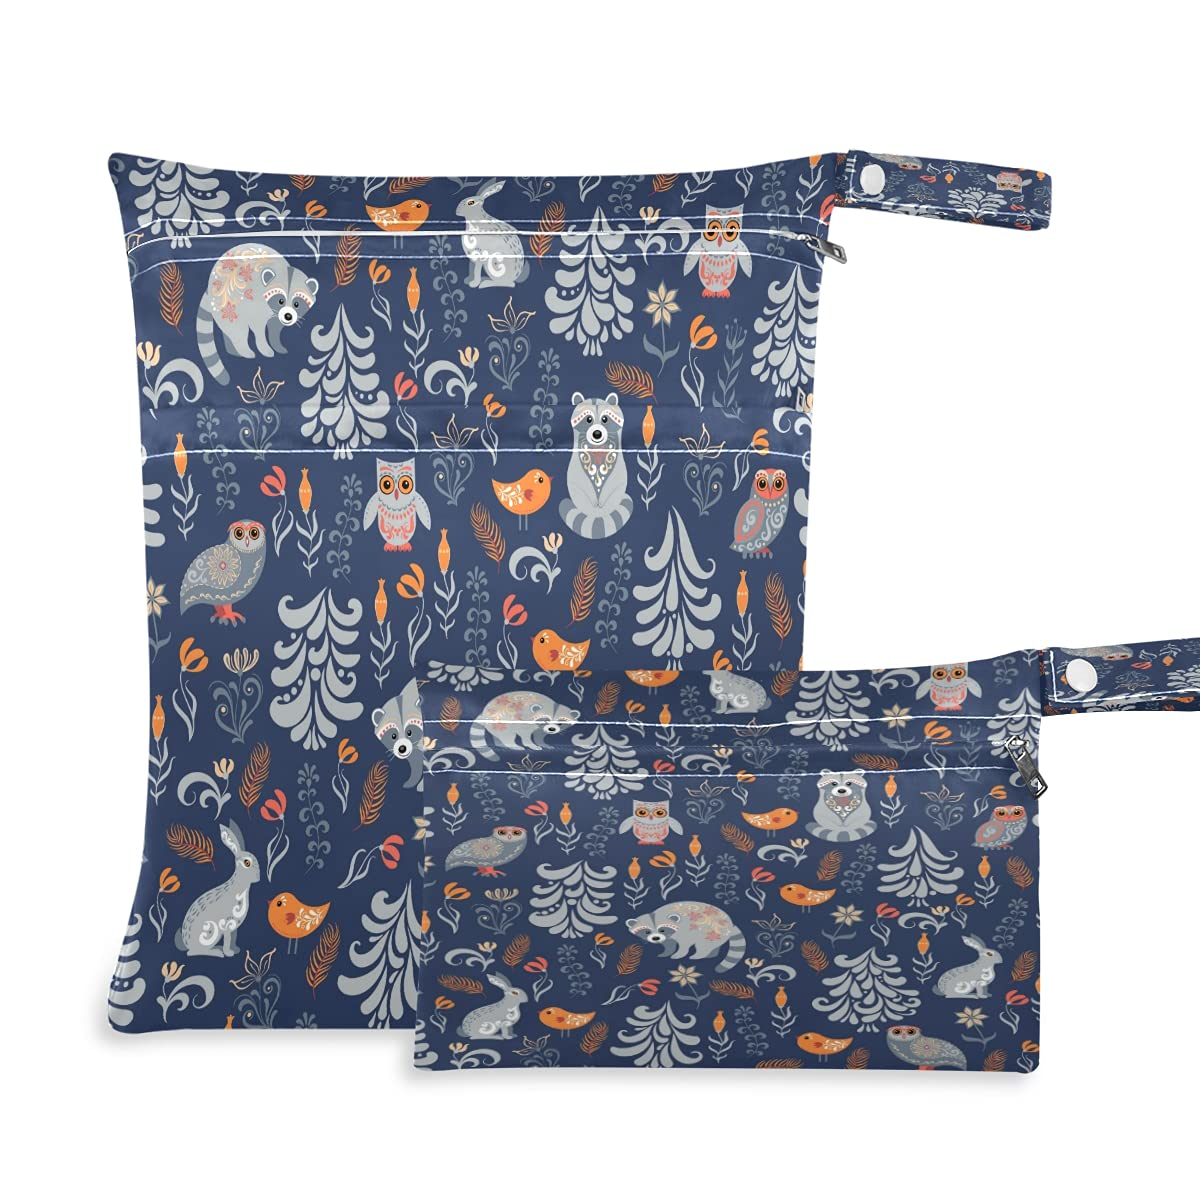 COZYHM Wet Dry Max 72% OFF Bags for Diaper Ow Animal Raccoon Forest Bird Bag Popularity